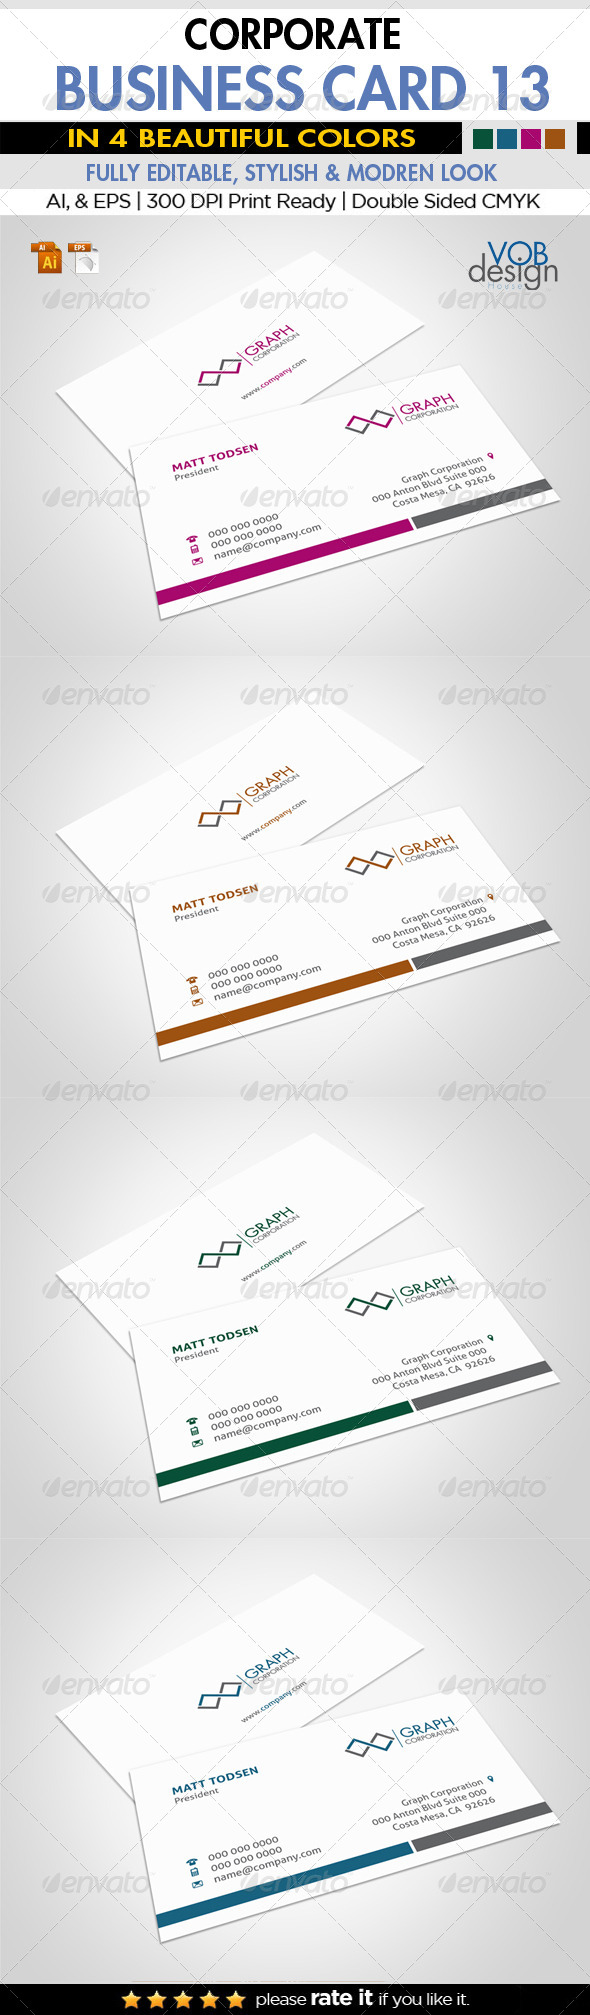 Corporate Business Card 13 - Business Cards Print Templates